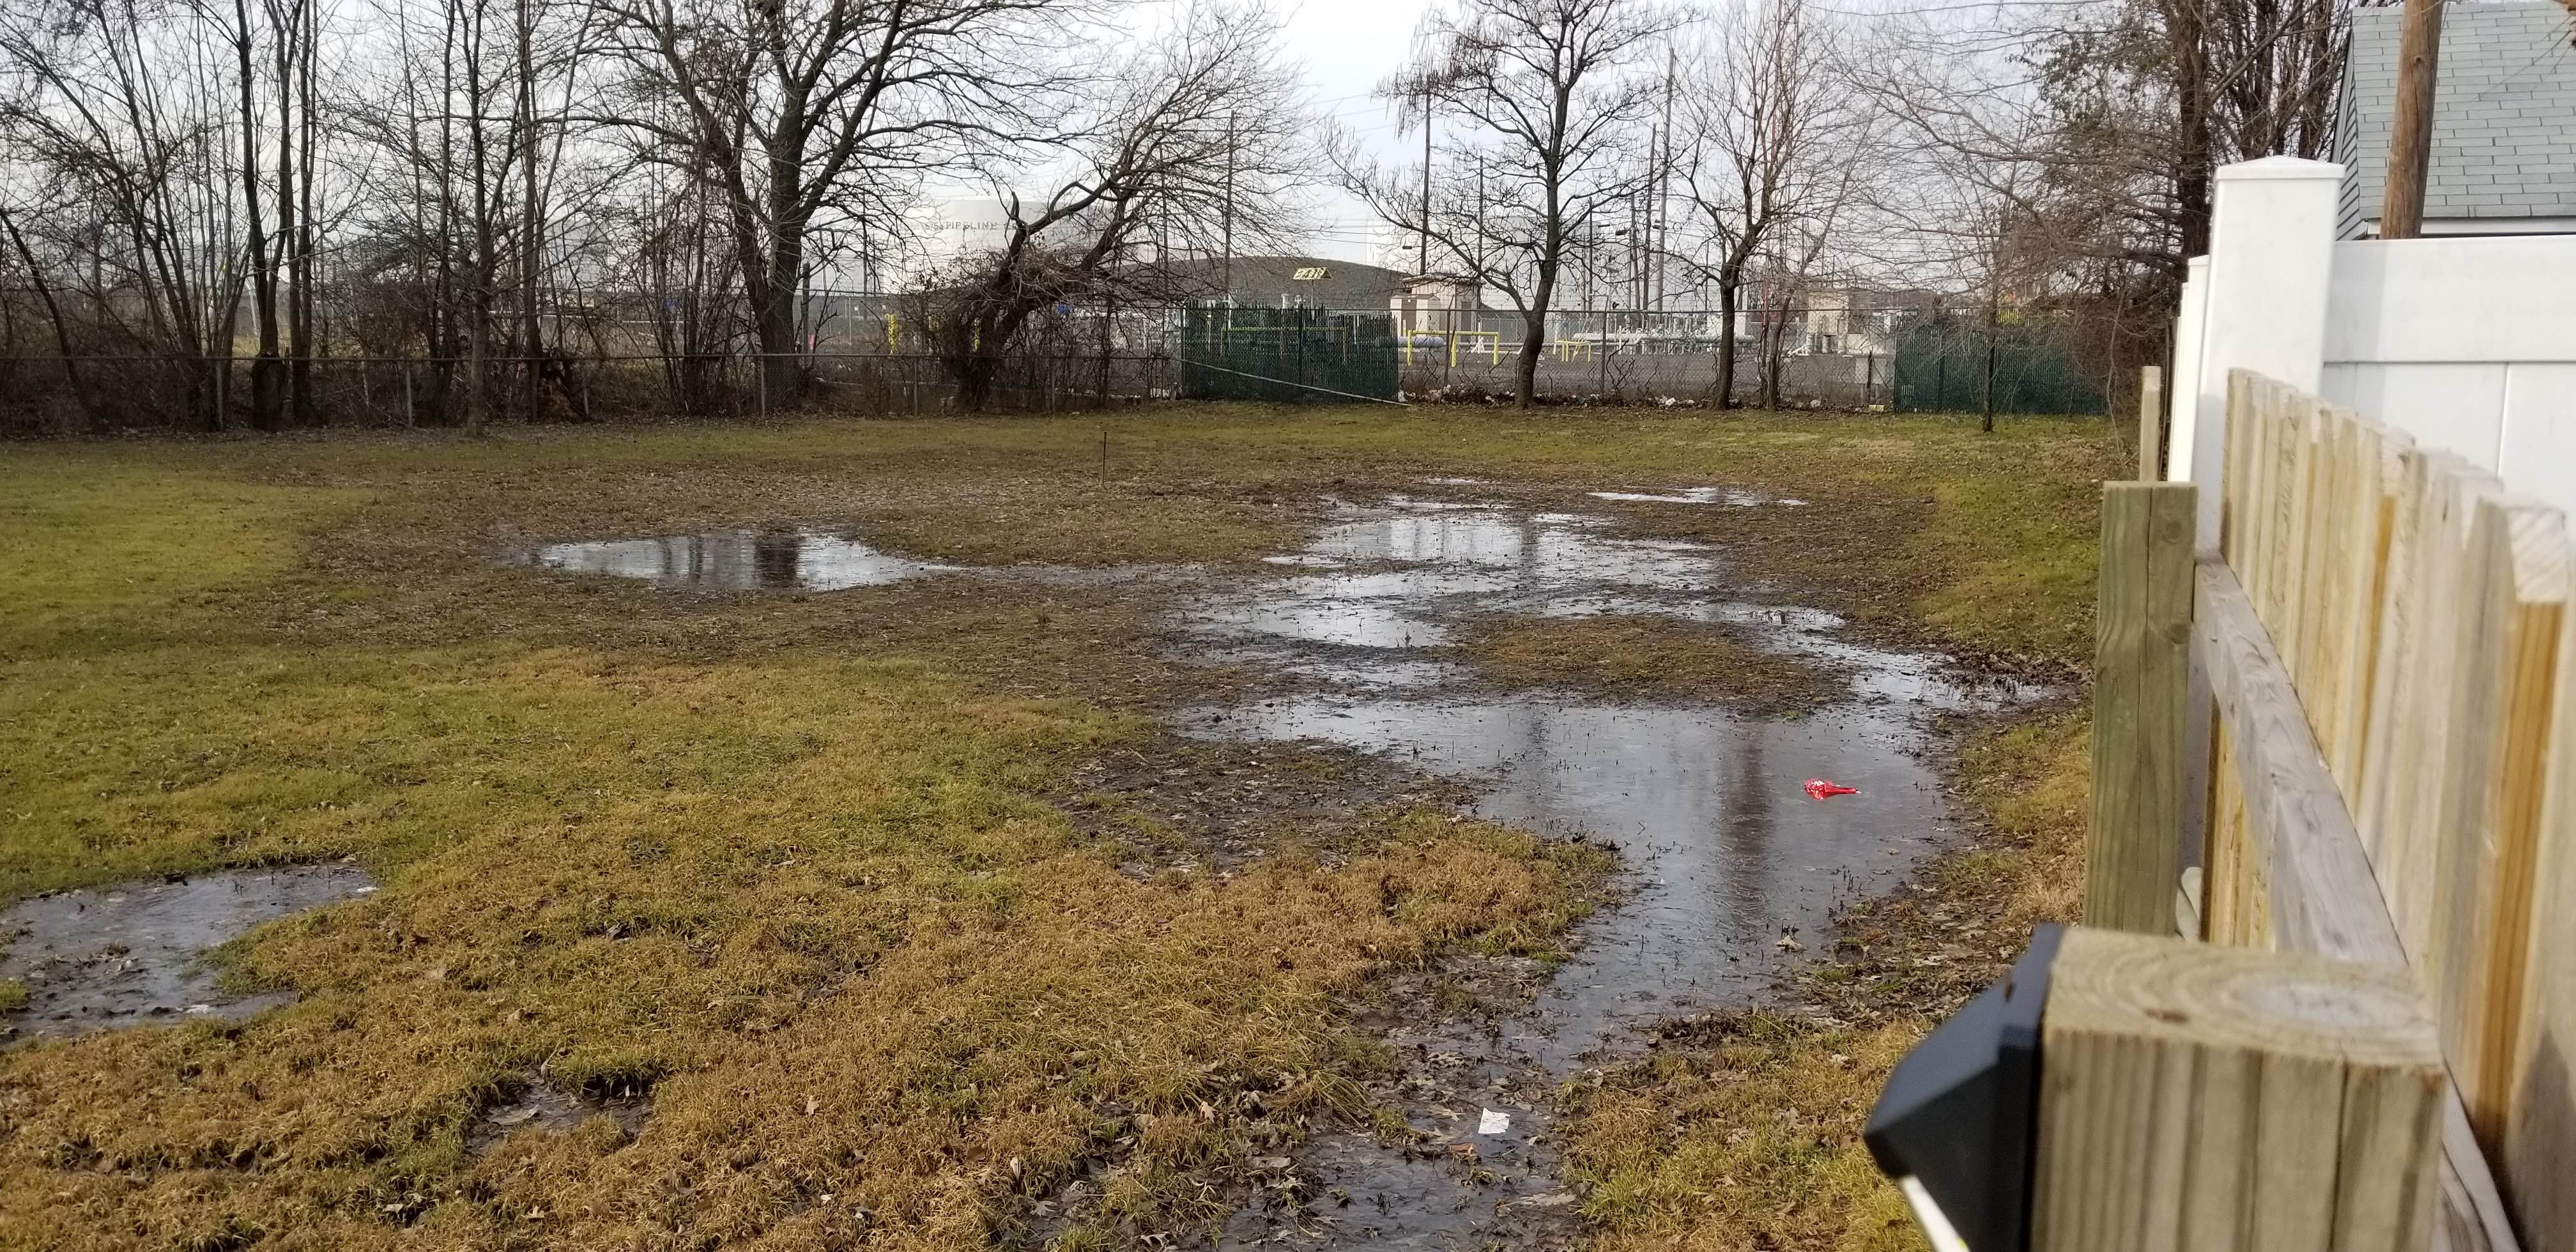 As do many urban municipalities, Linden suffers severe flooding from heavy rains and storms. One of the significant sources of flood water threatening the City comes from stormwater runoff.